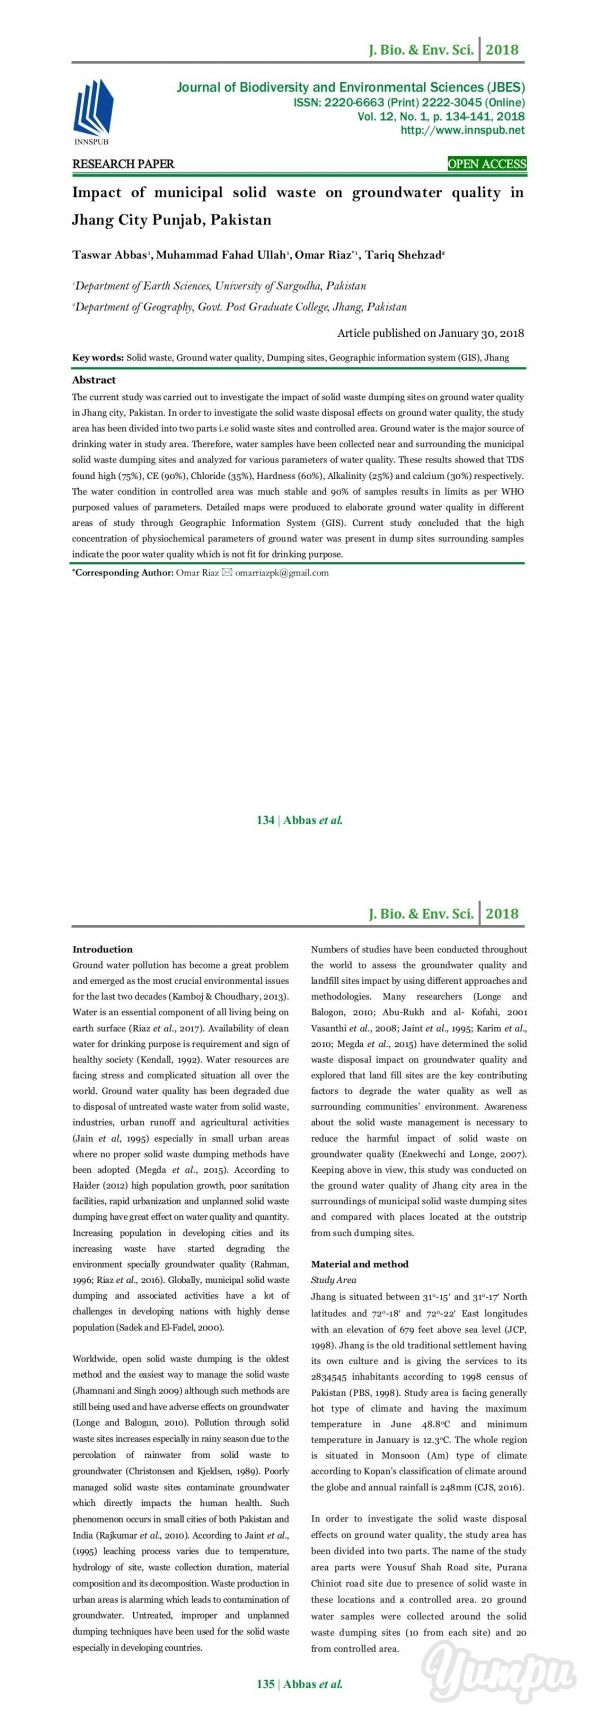 Impact Of Municipal Solid Waste On Groundwater Quality In Jhang City Punjab Pakistan Groundwater Environmental Chemistry Environmental Science